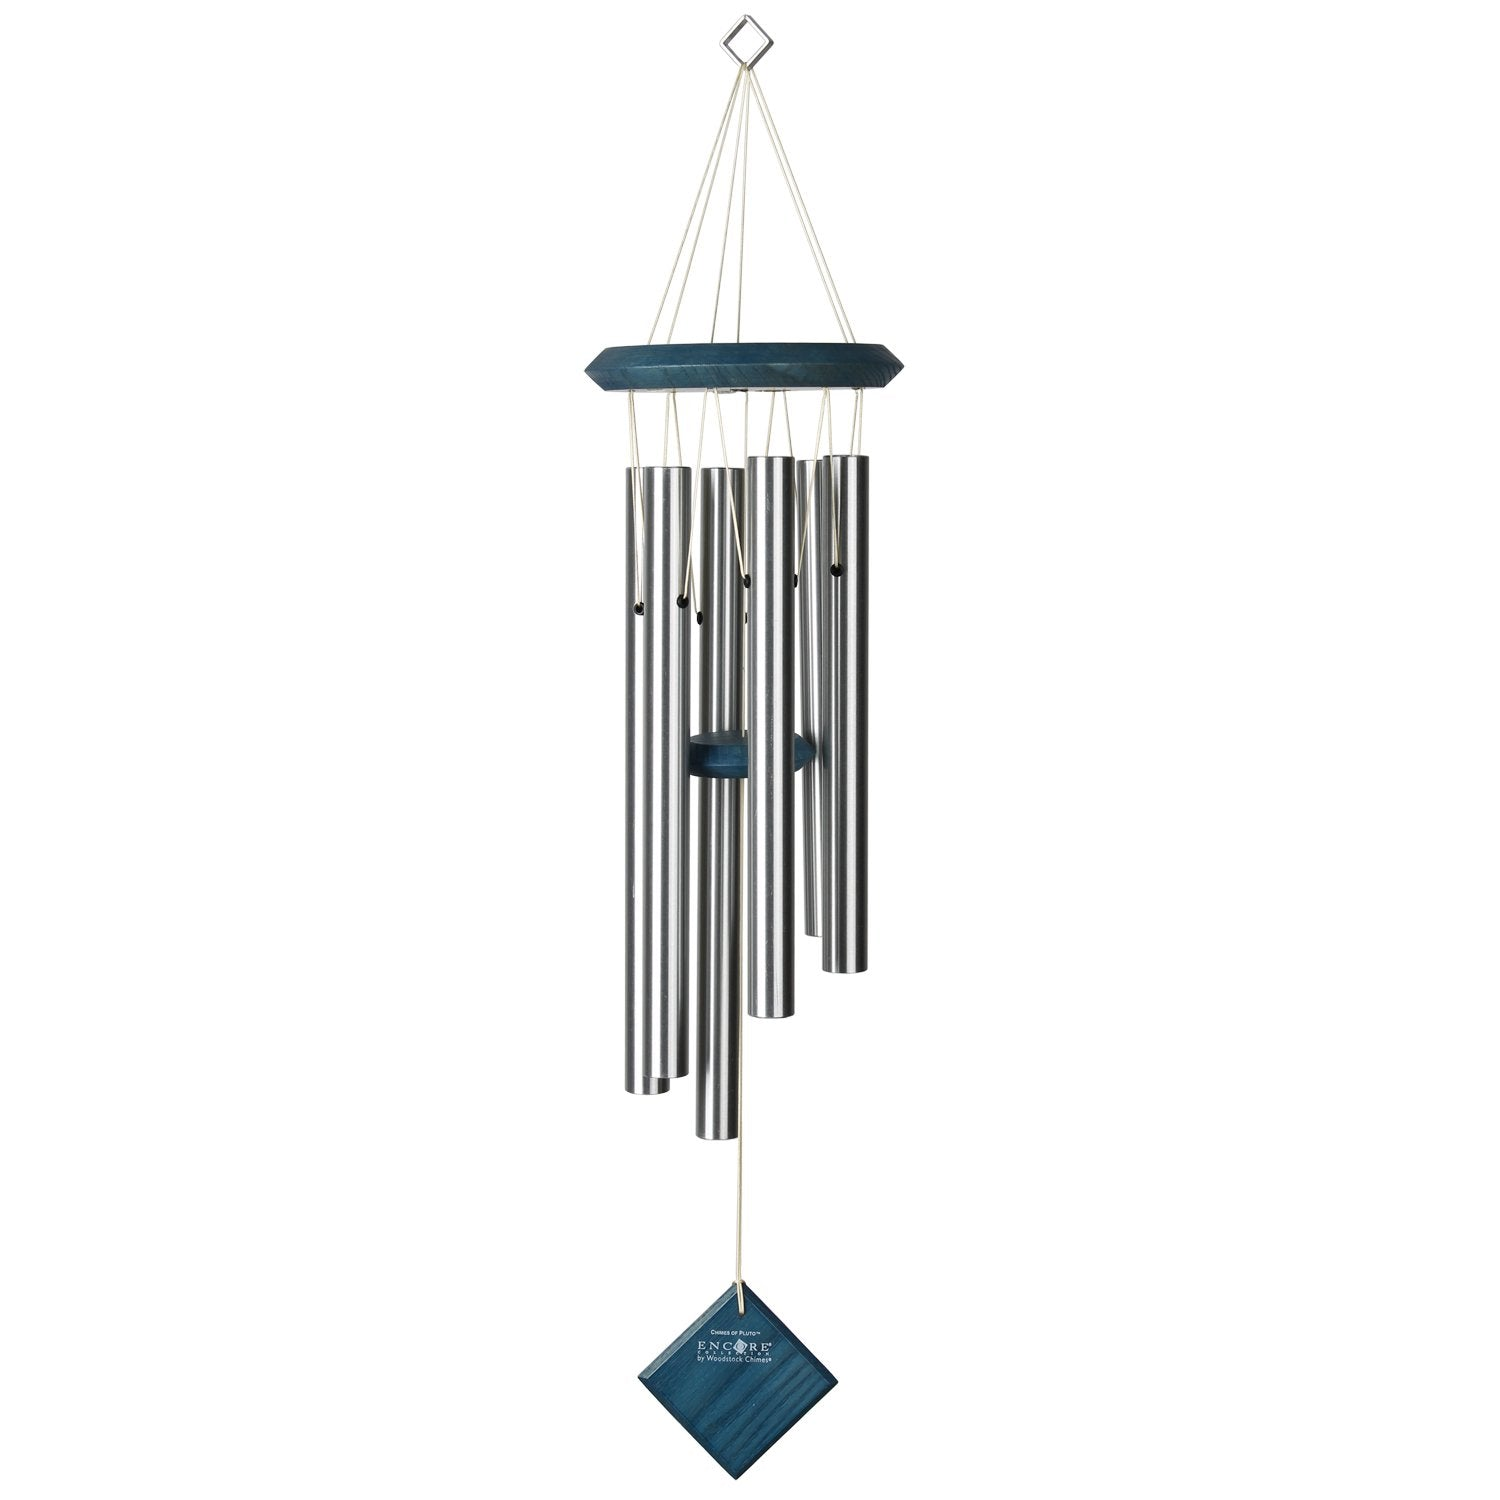 Encore Chimes of Pluto - Blue Wash full product image